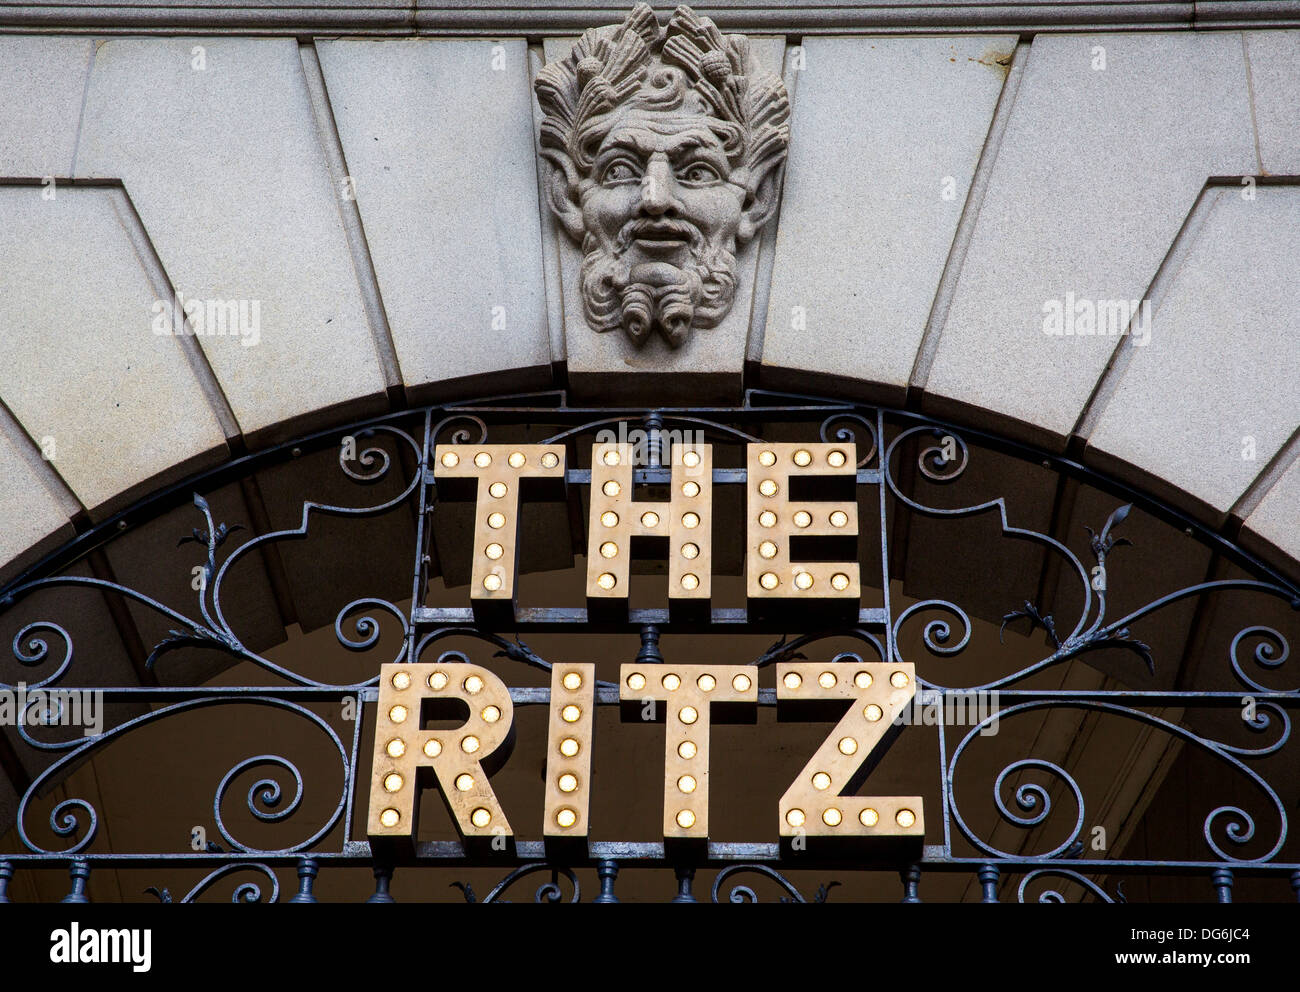 THE RITZ HOTEL SIGN - Stock Image